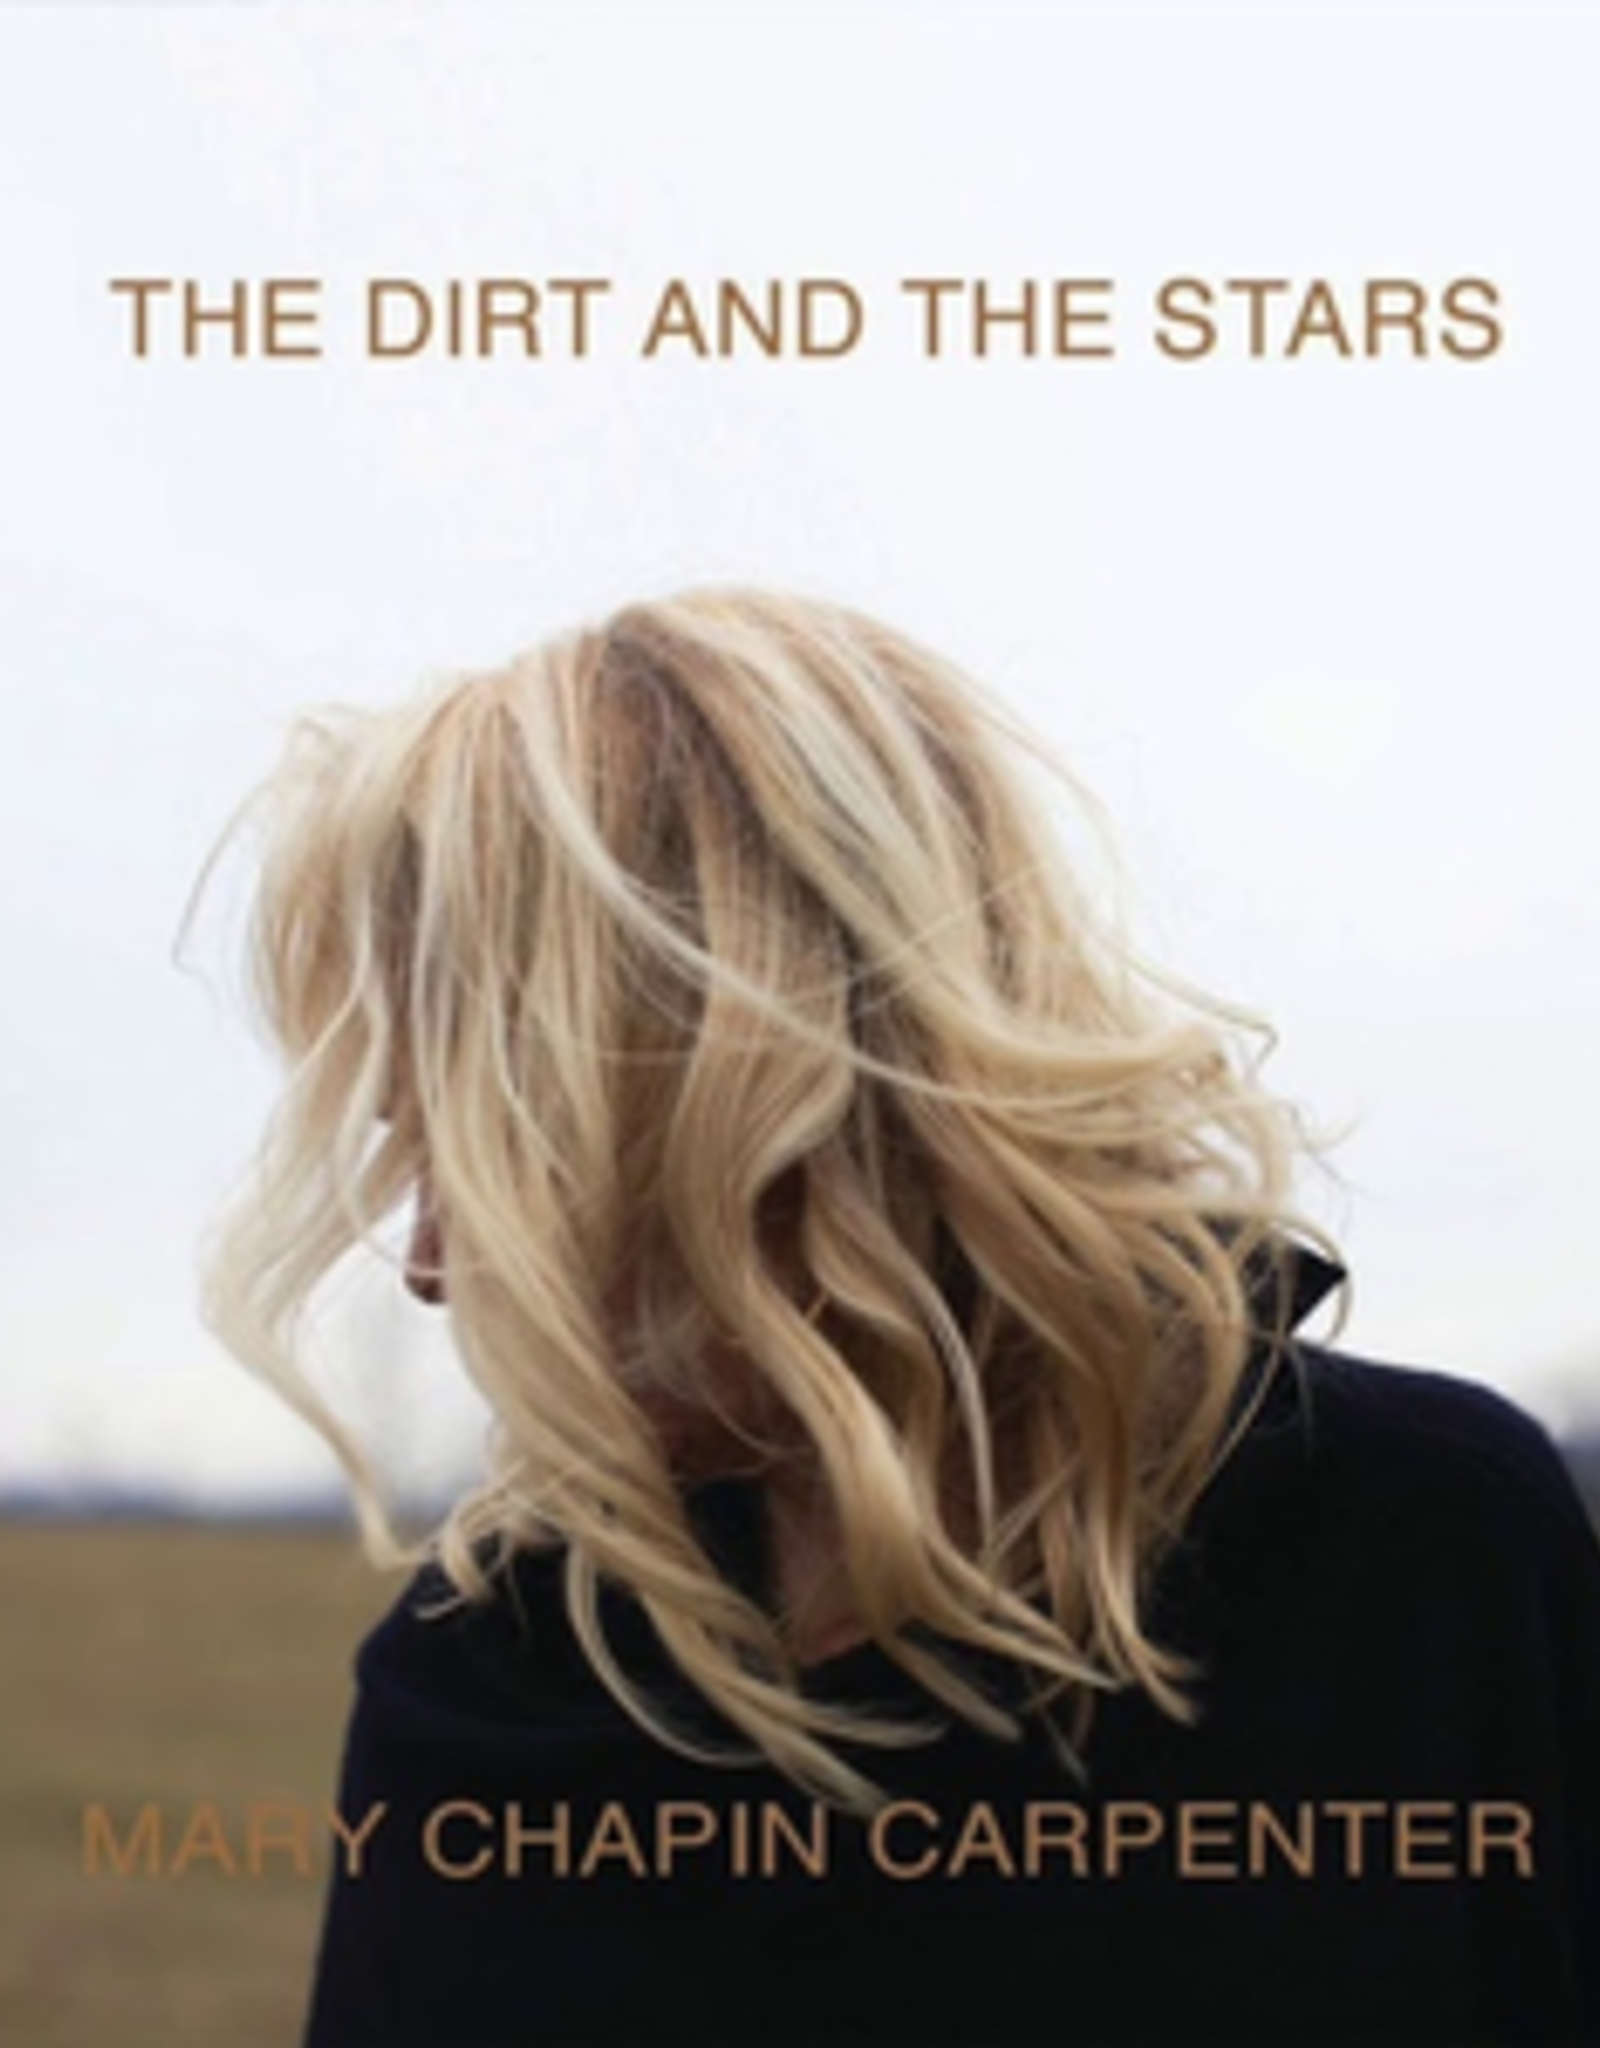 Mary-Chapin Carpenter - Dirt And The Stars